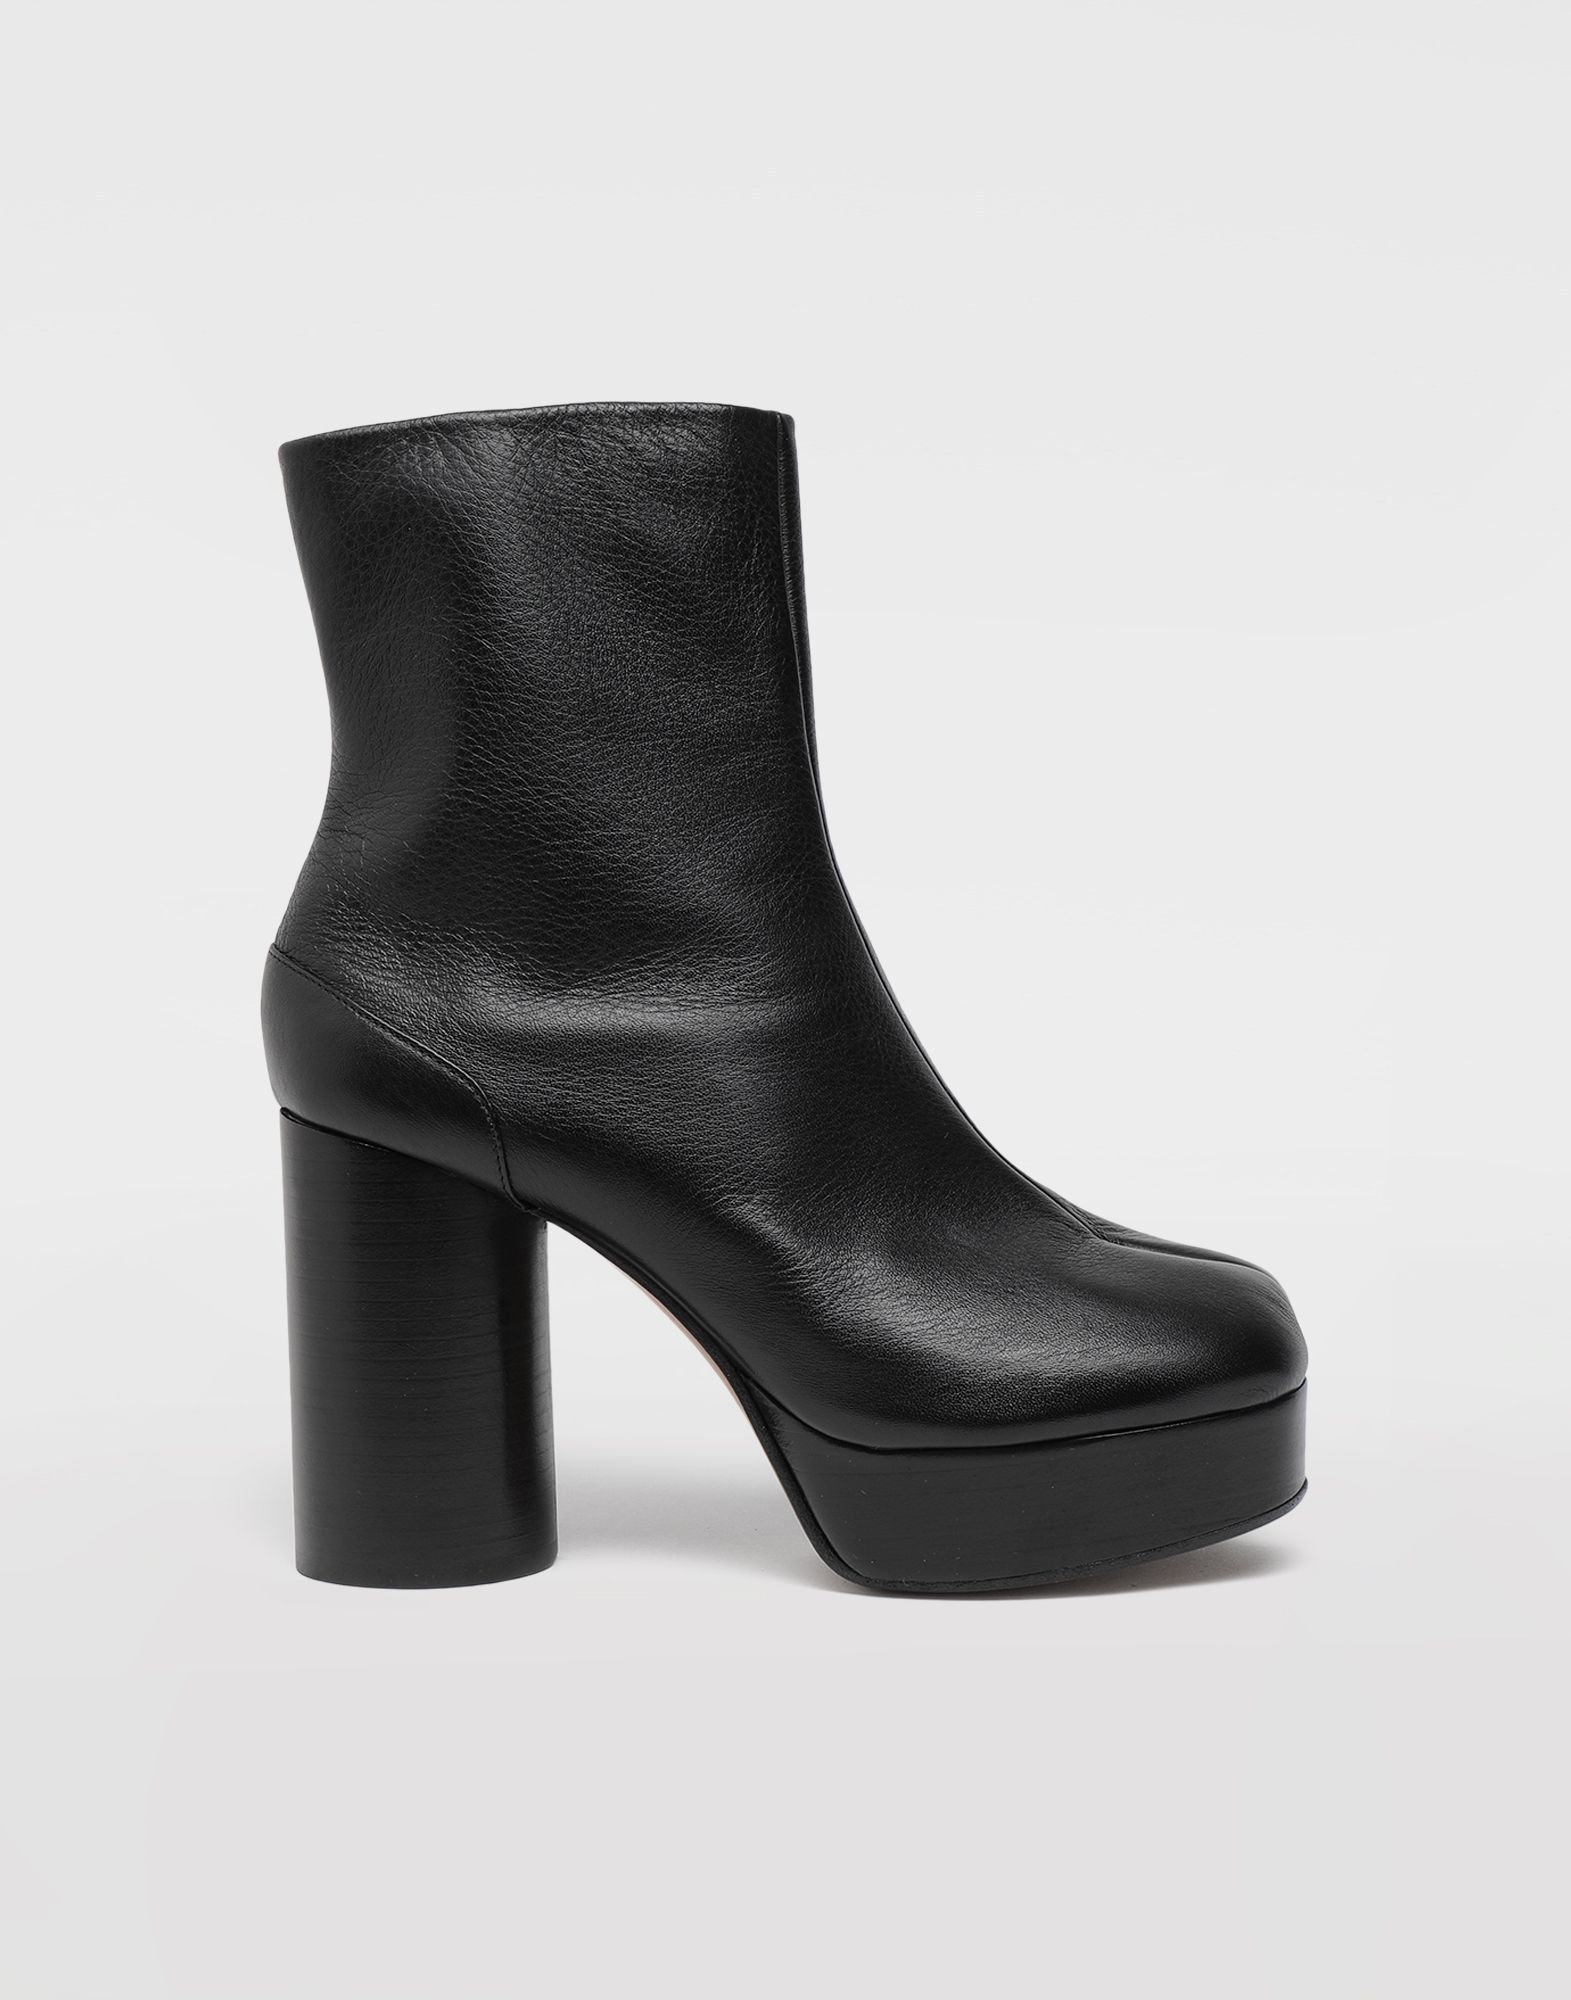 MAISON MARGIELA Tabi platform ankle boot Ankle boots Woman f